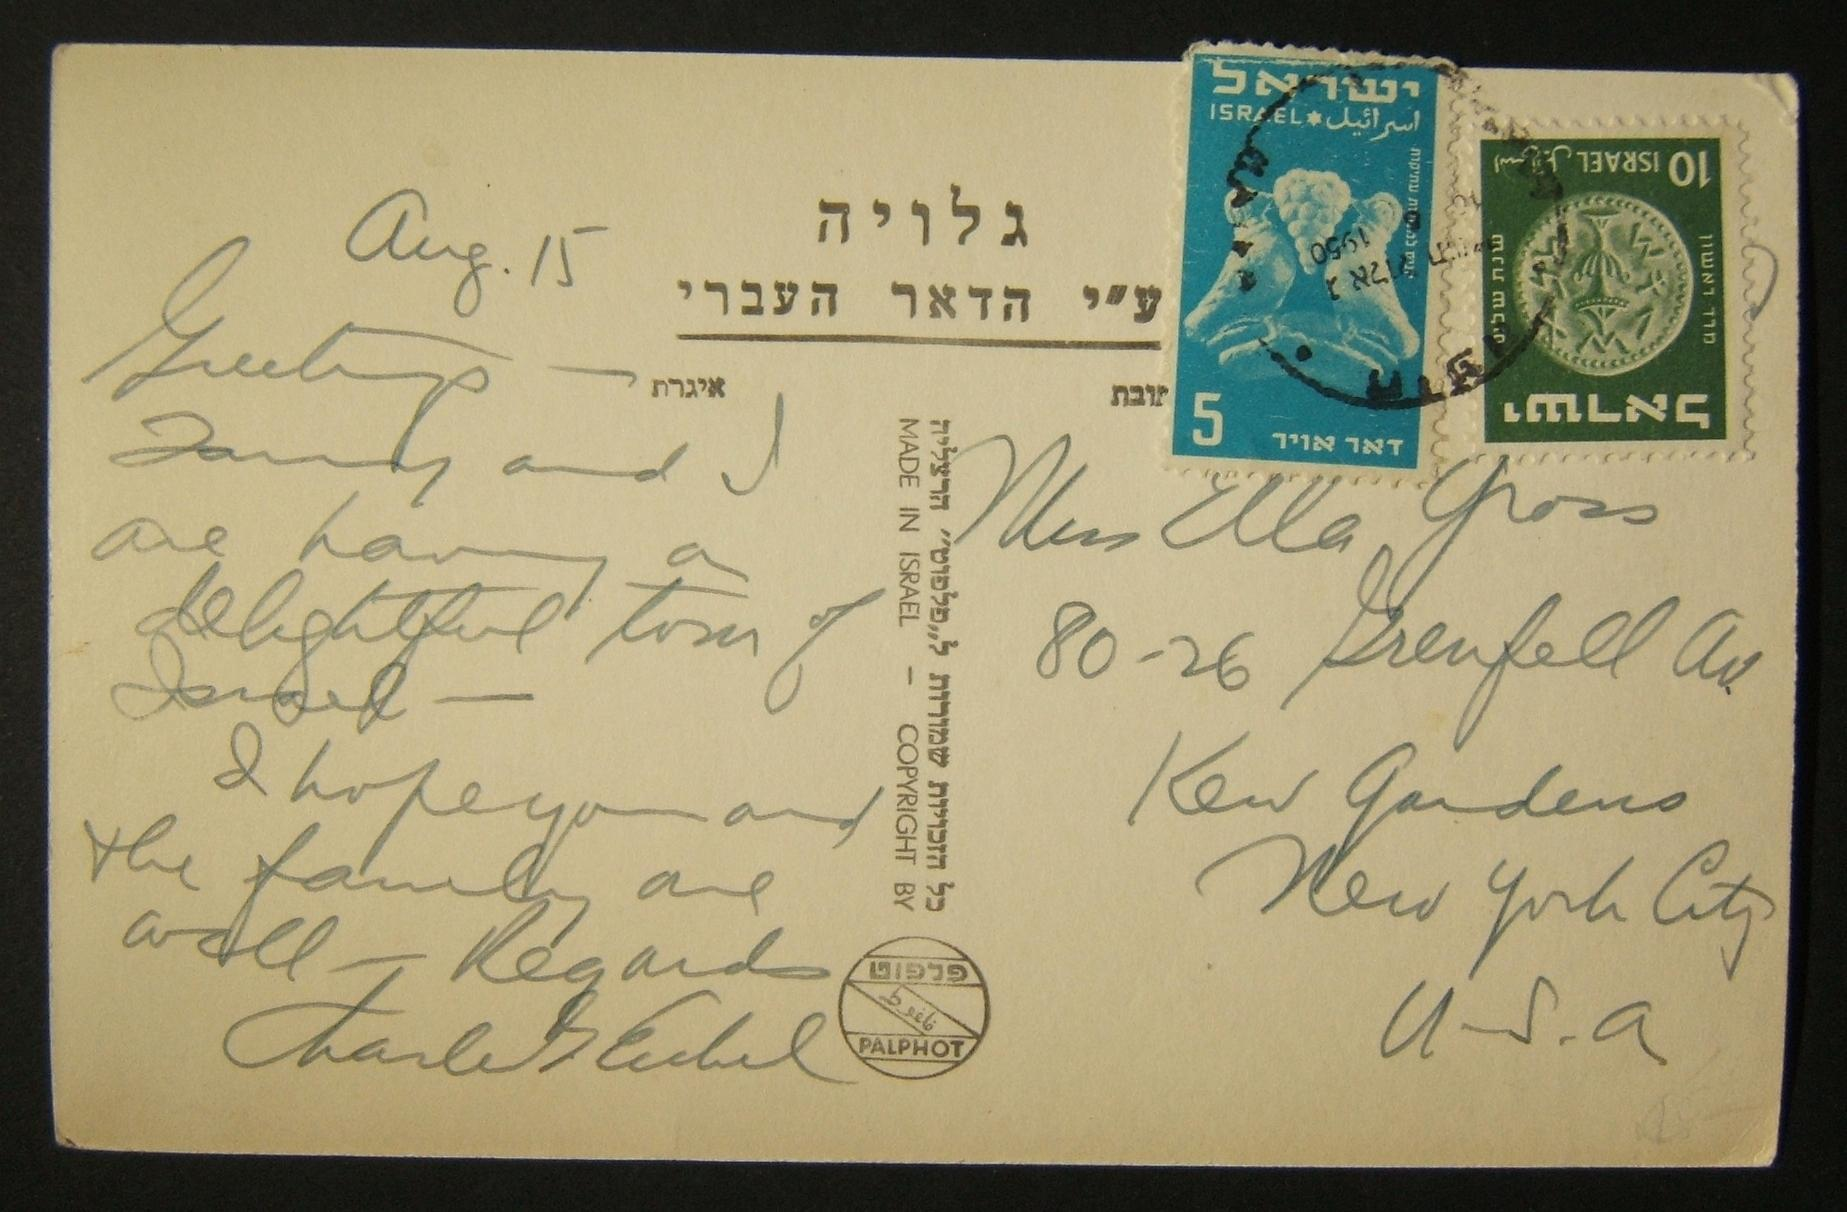 8/1950 surfaced mailed postcard from HAIFA to US with 1st Airmail/2nd Coinage stamps